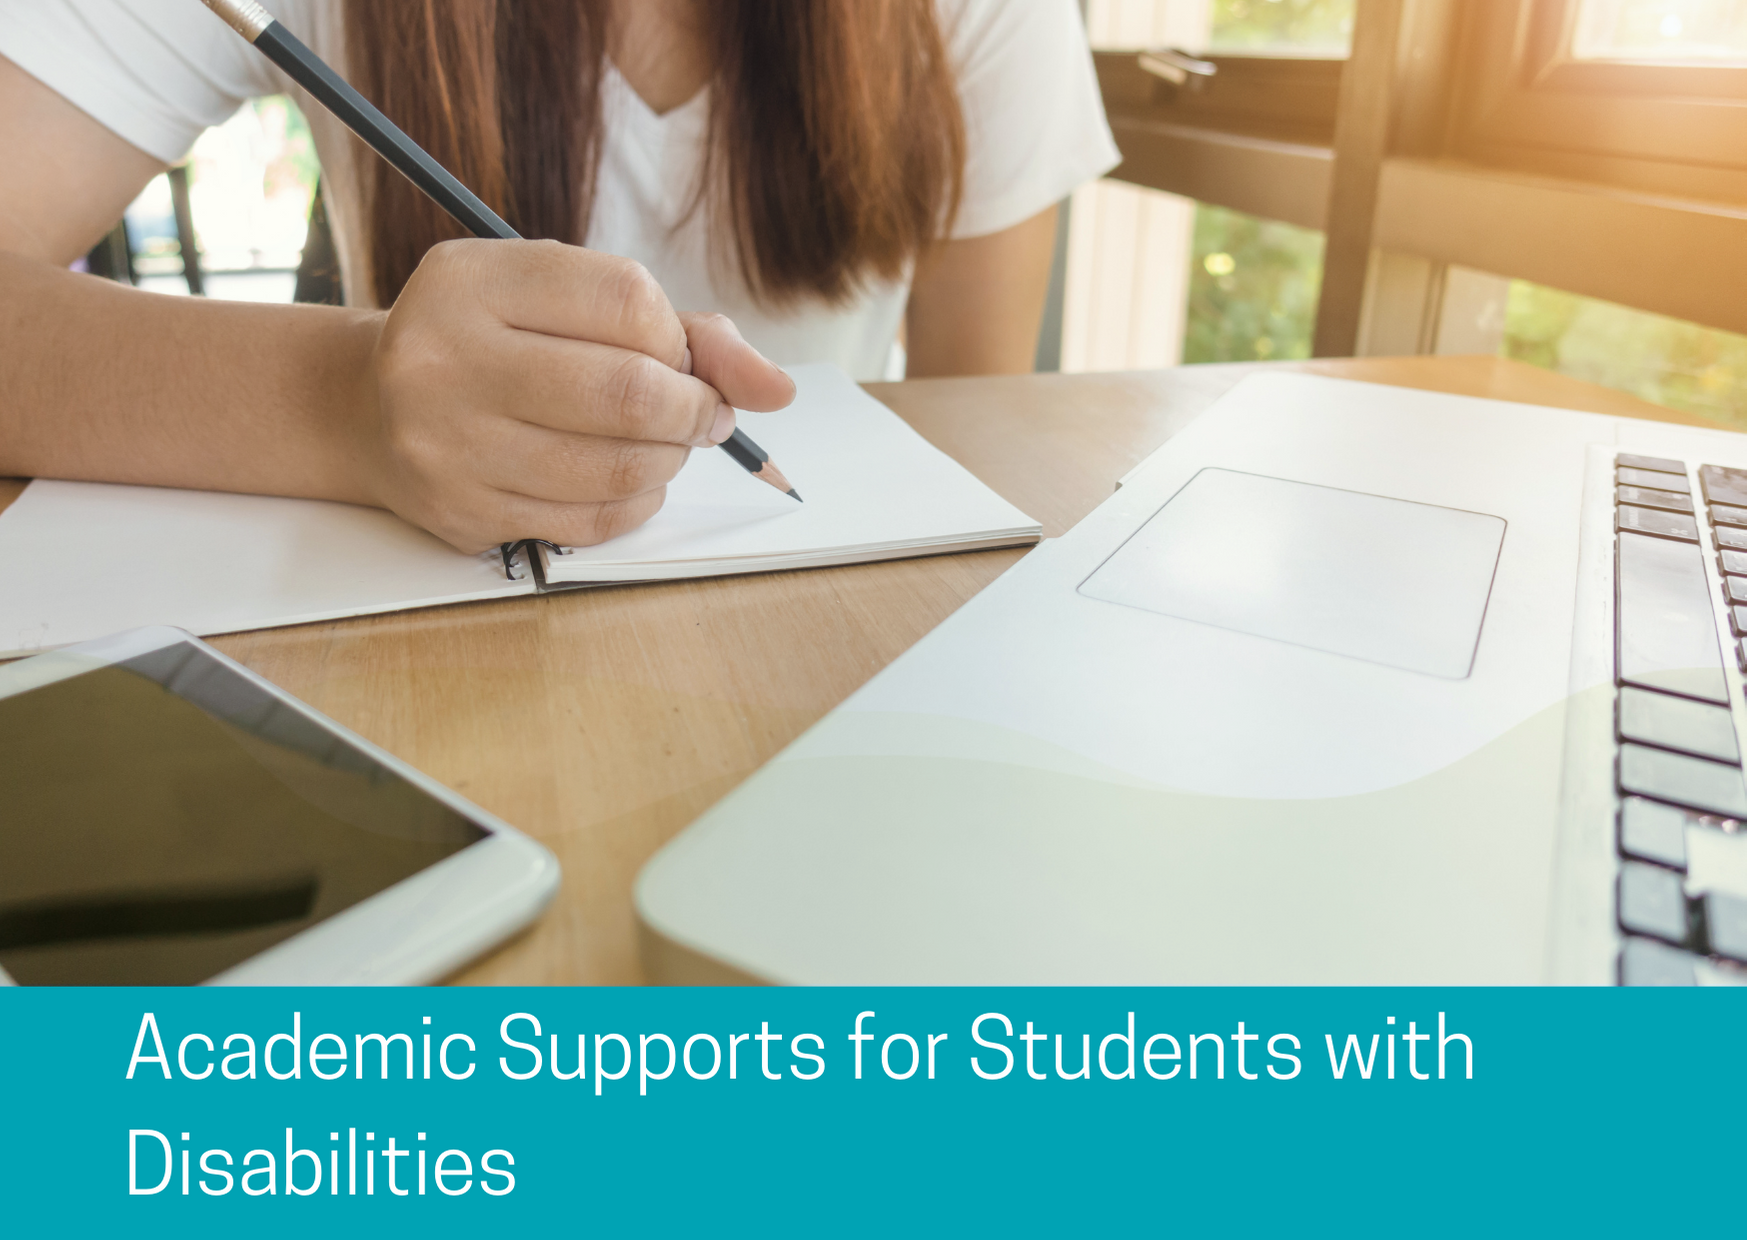 Academic Supports for Students with Disabilities